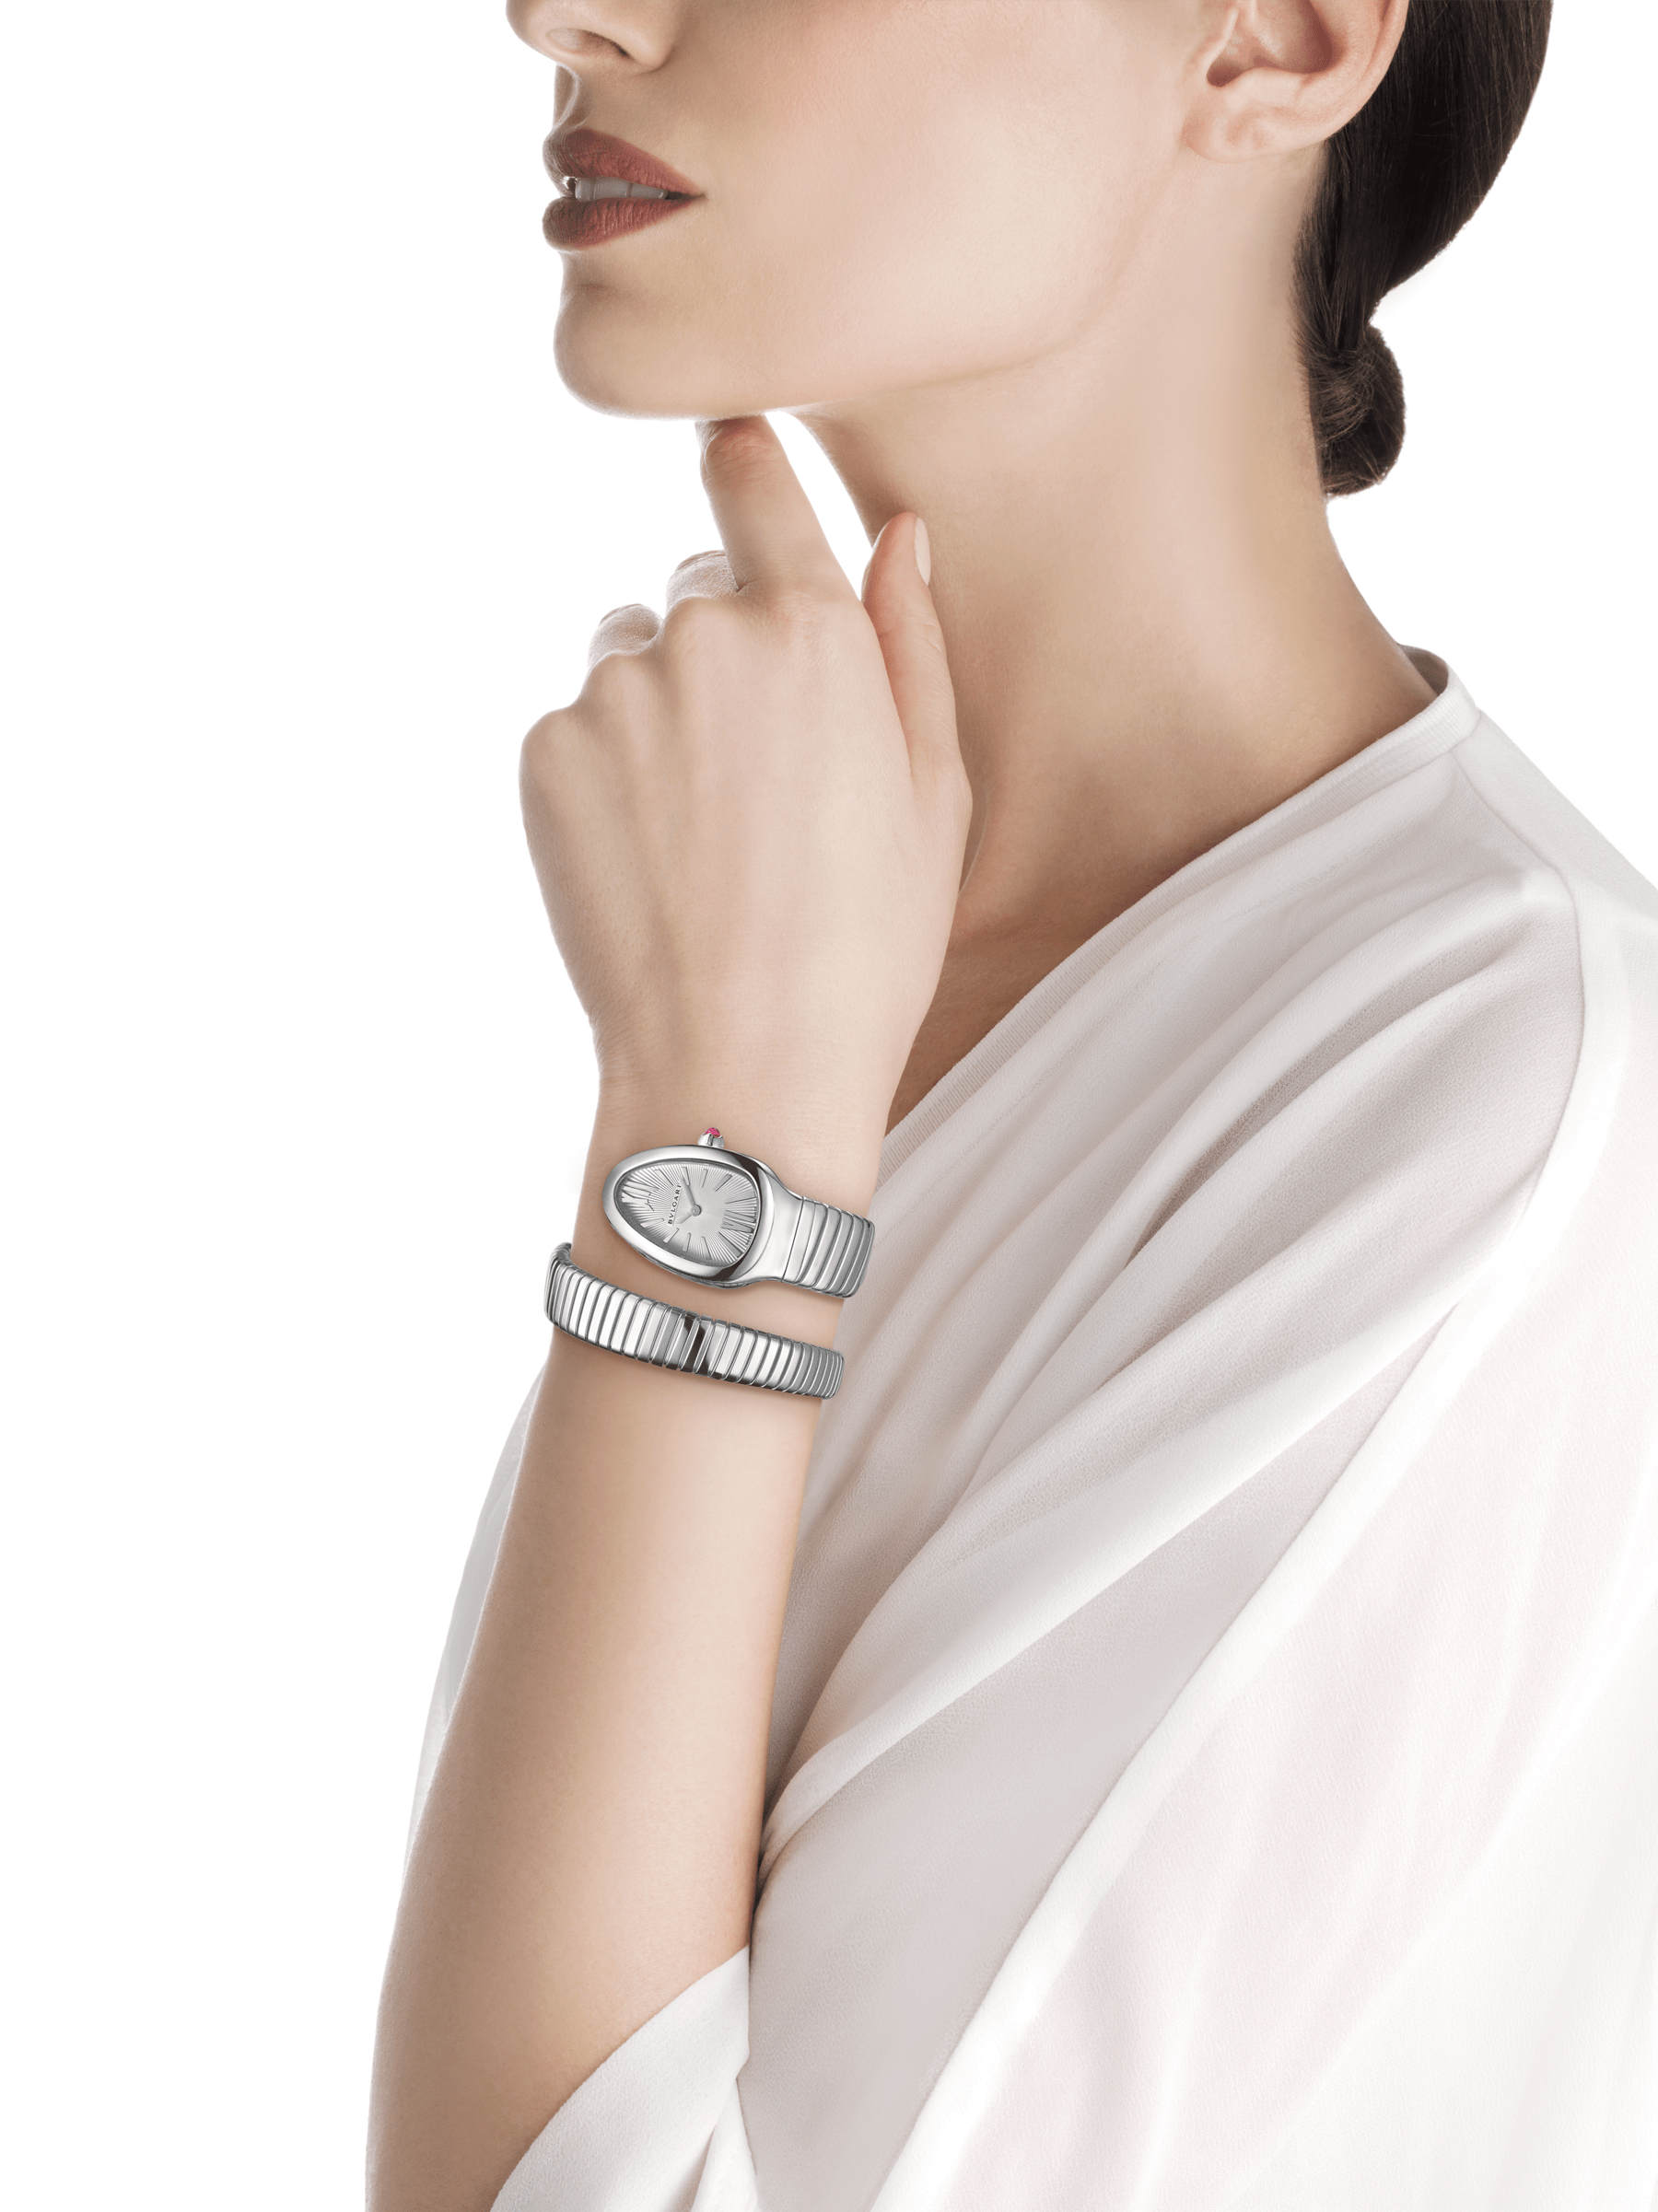 Serpenti Tubogas single spiral watch in stainless steel case and bracelet, with silver opaline dial. Large size. SrpntTubogas-white-dial1 image 5